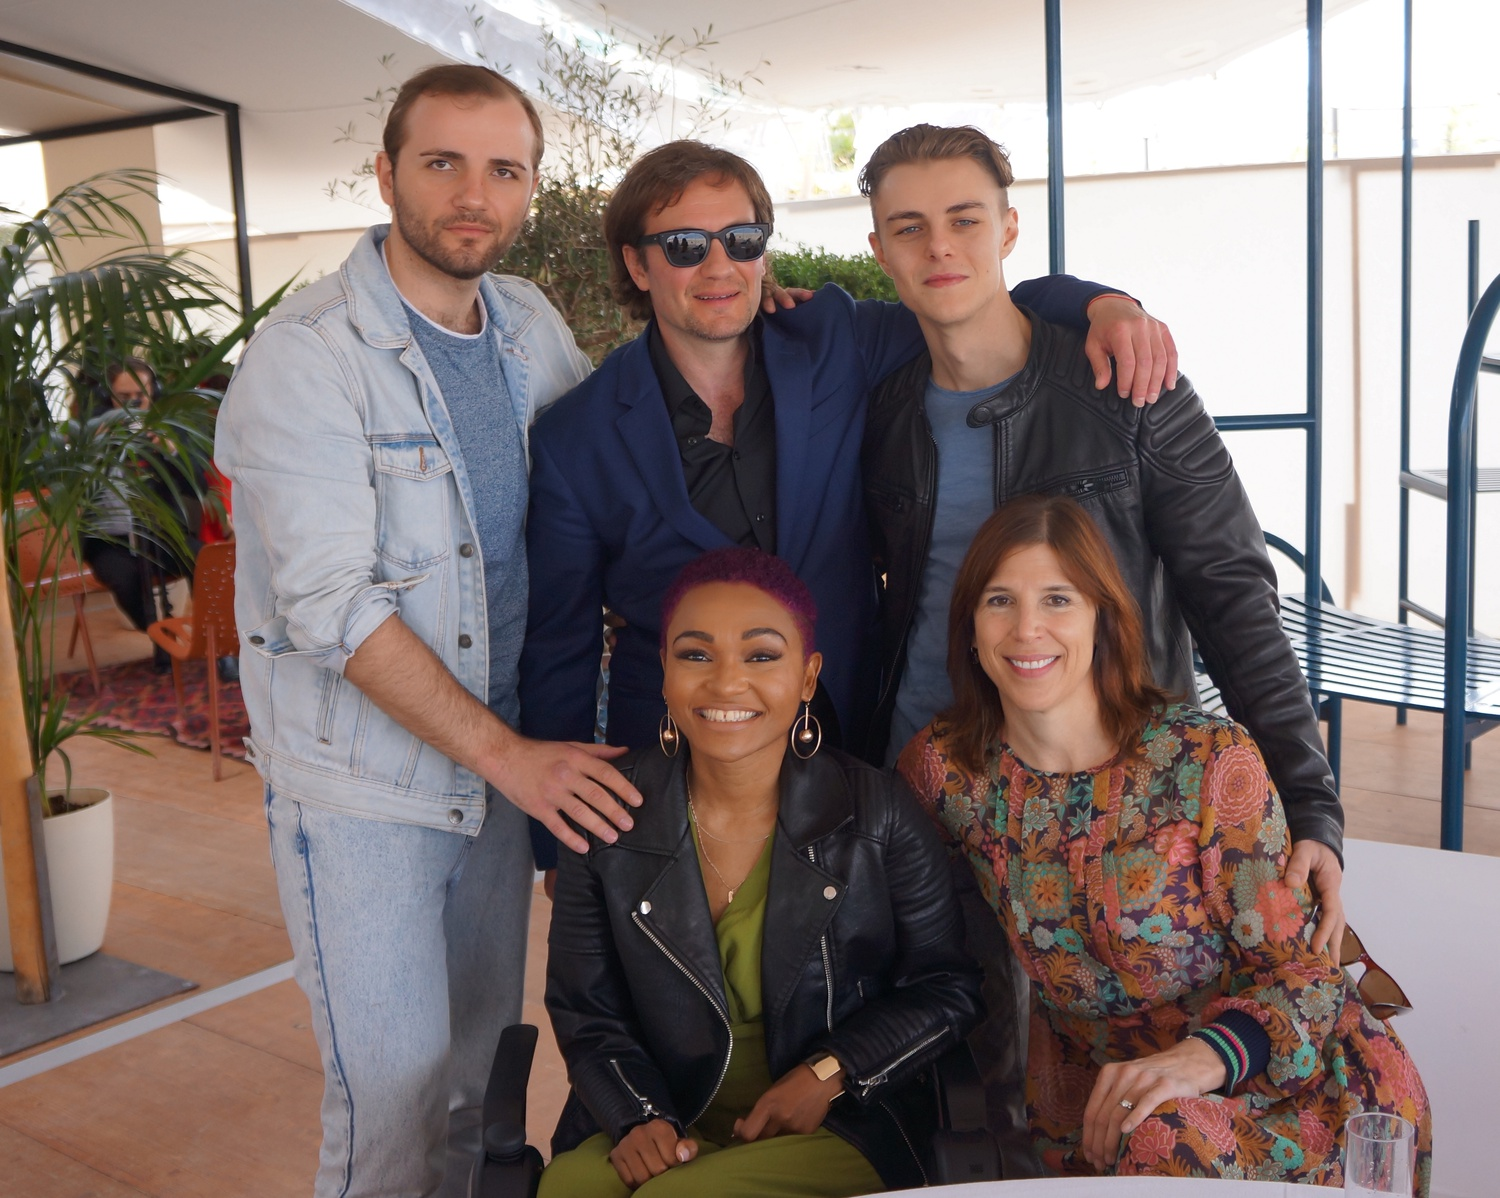 """The team of """"Give Me Liberty,"""" from left to right, starting with the top row: Maksim Stoyanov, who plays Dima; Director Kirill Mikhanovsky; Chris Galust, who plays Vic; Lauren """"Lolo"""" Spencer, who plays Tracy; Screenplay writer Alice Austen."""